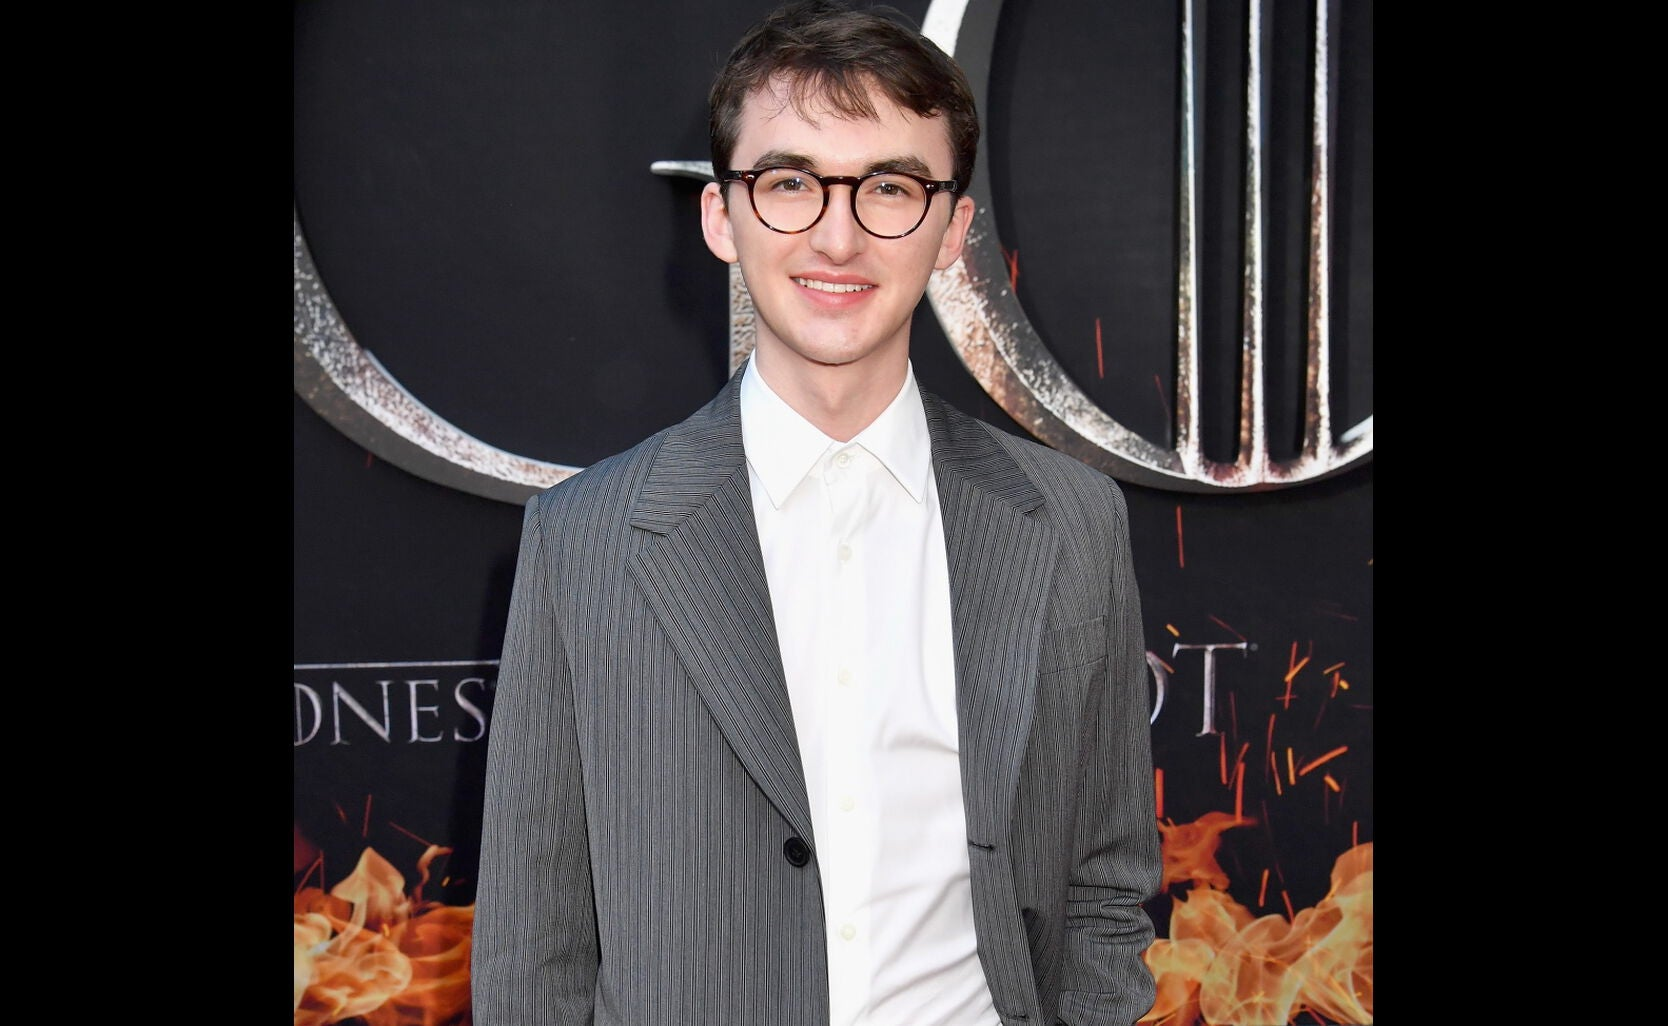 Isaac Hampstead-Wright at the premiere of Game of Thrones season 8, 2019